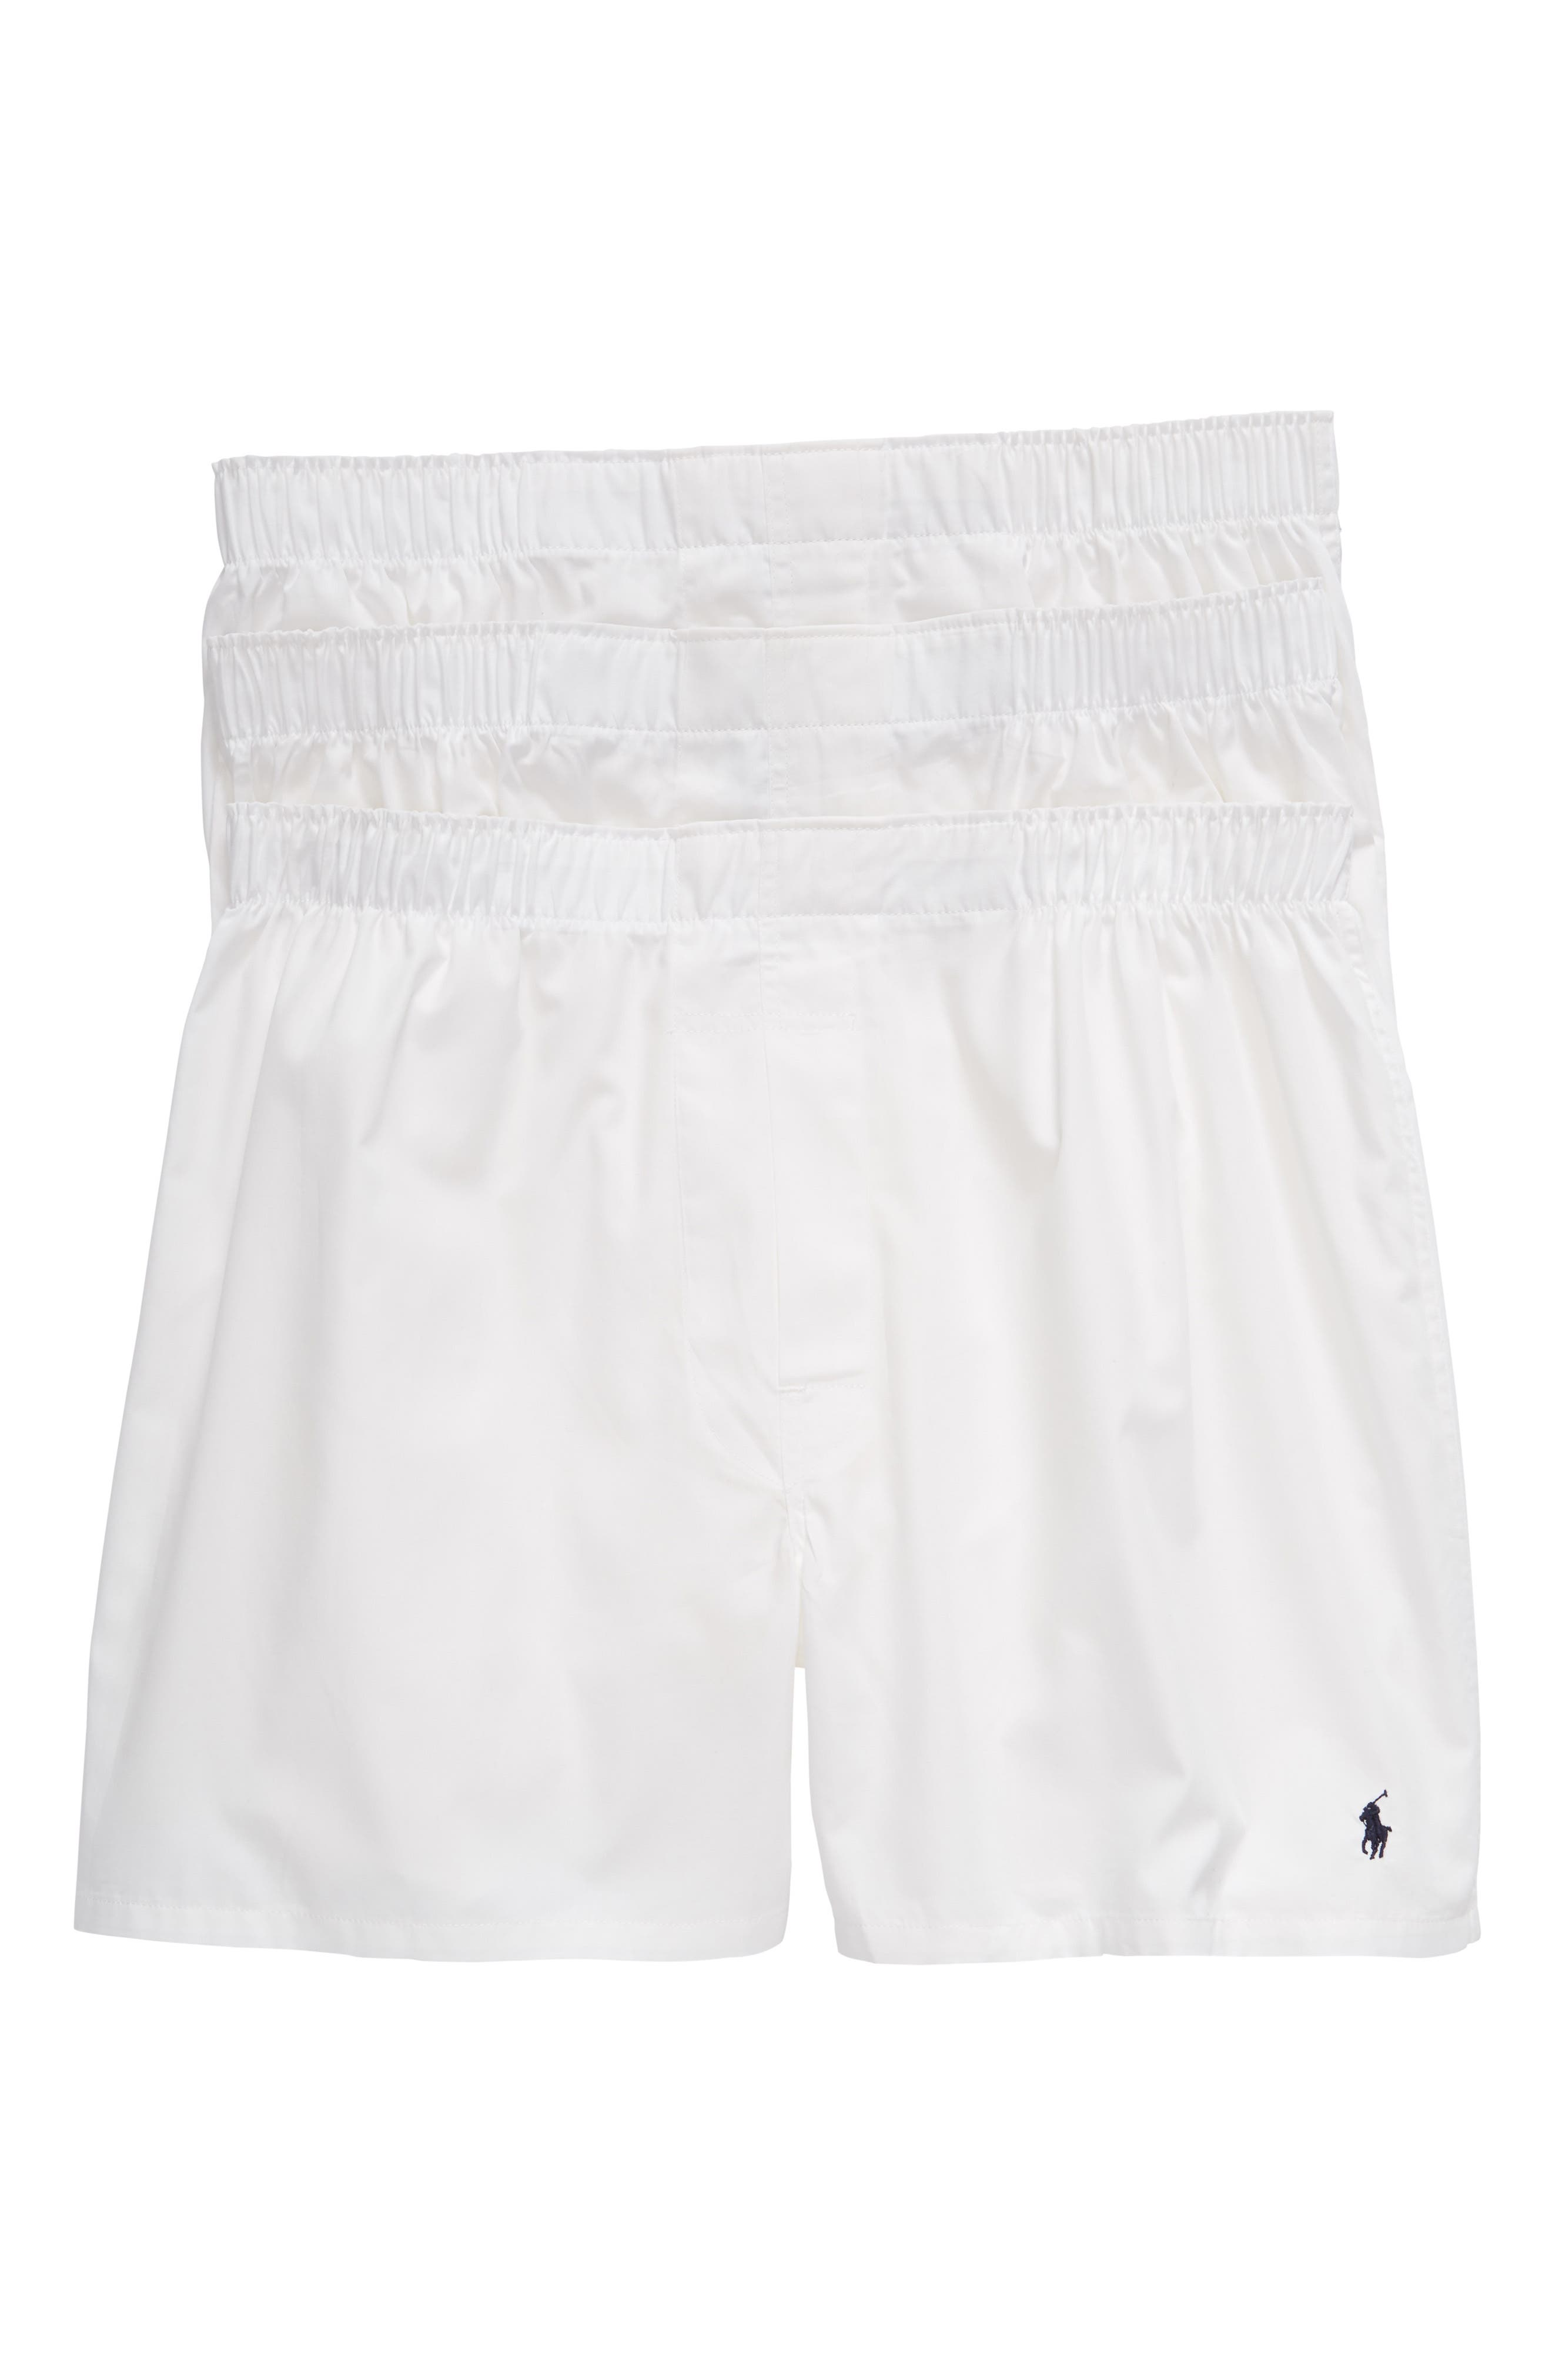 POLO RALPH LAUREN 3-Pack Boxers, Main, color, WHITE